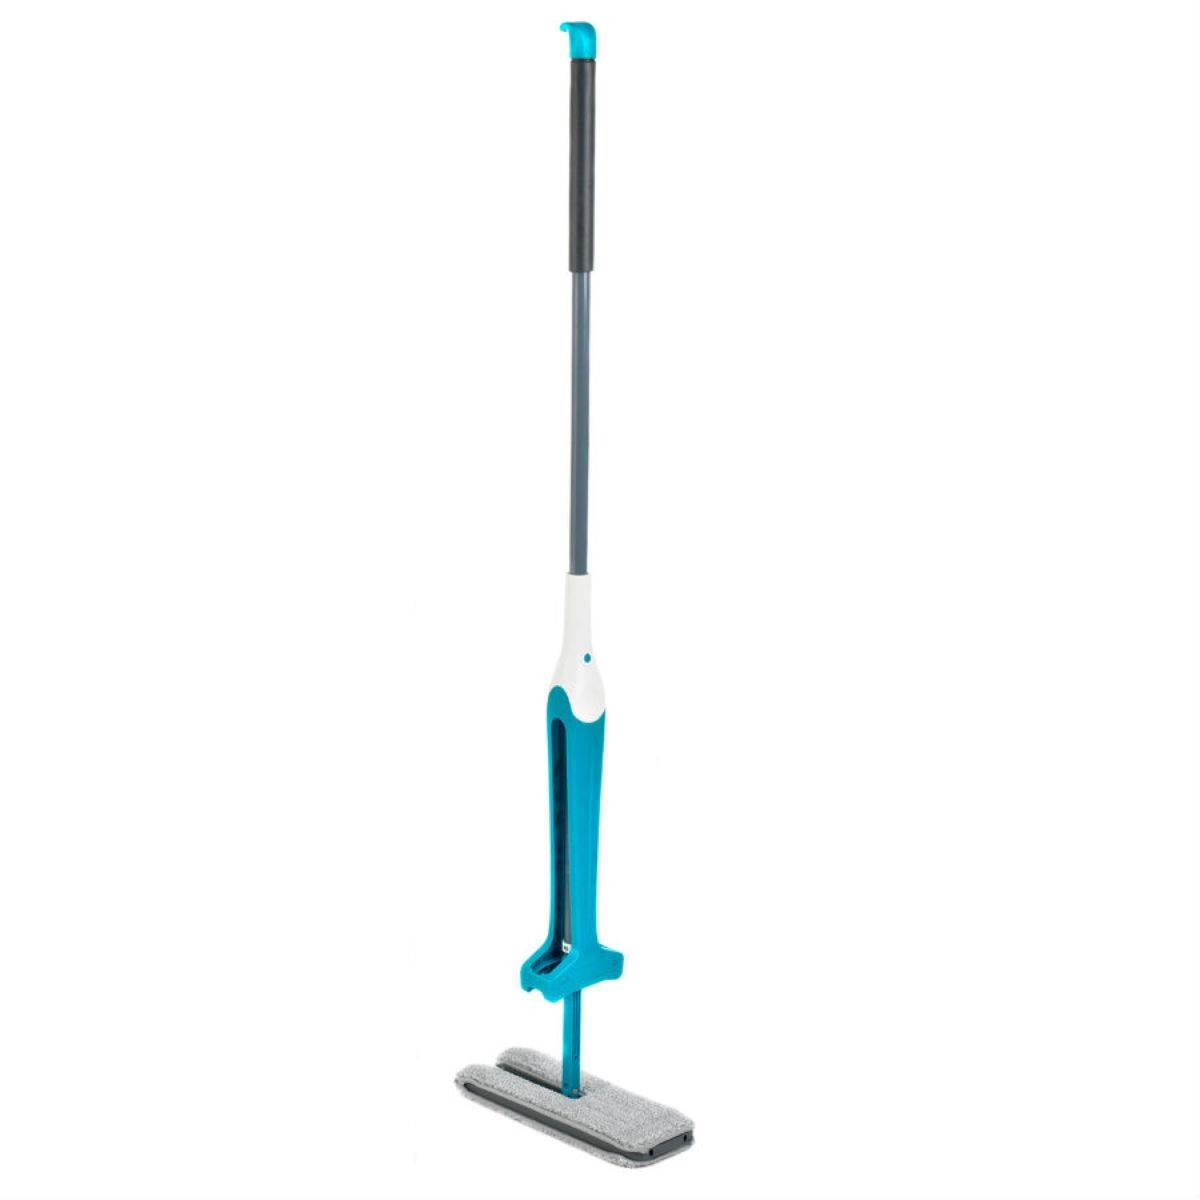 Beldray Double-Sided Squeegee Mop - Turquoise